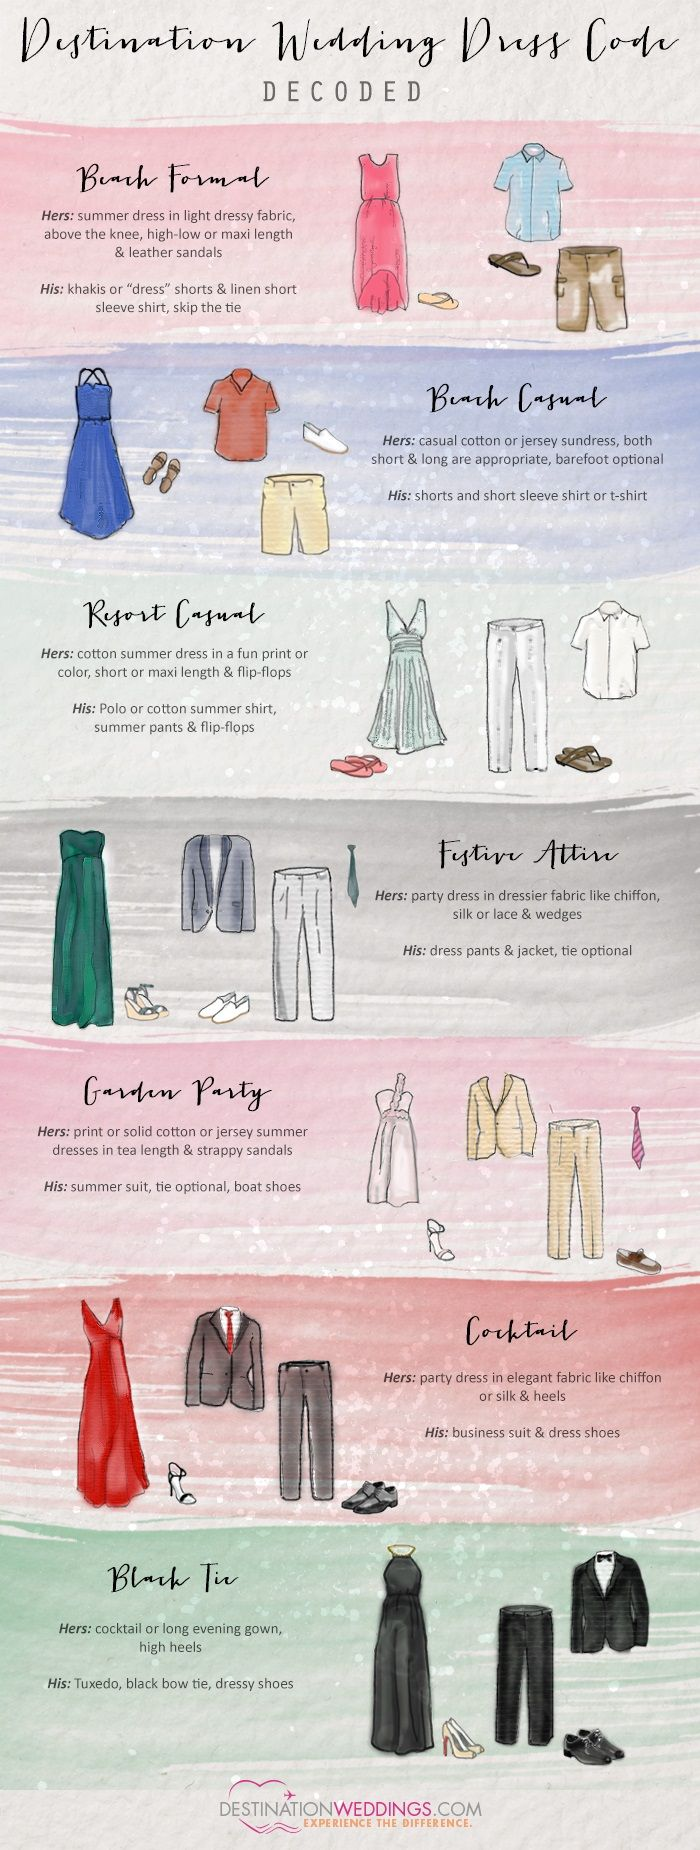 Dress code evening gown - Dress Codes For Weddings De Mystified Infographic Fashion